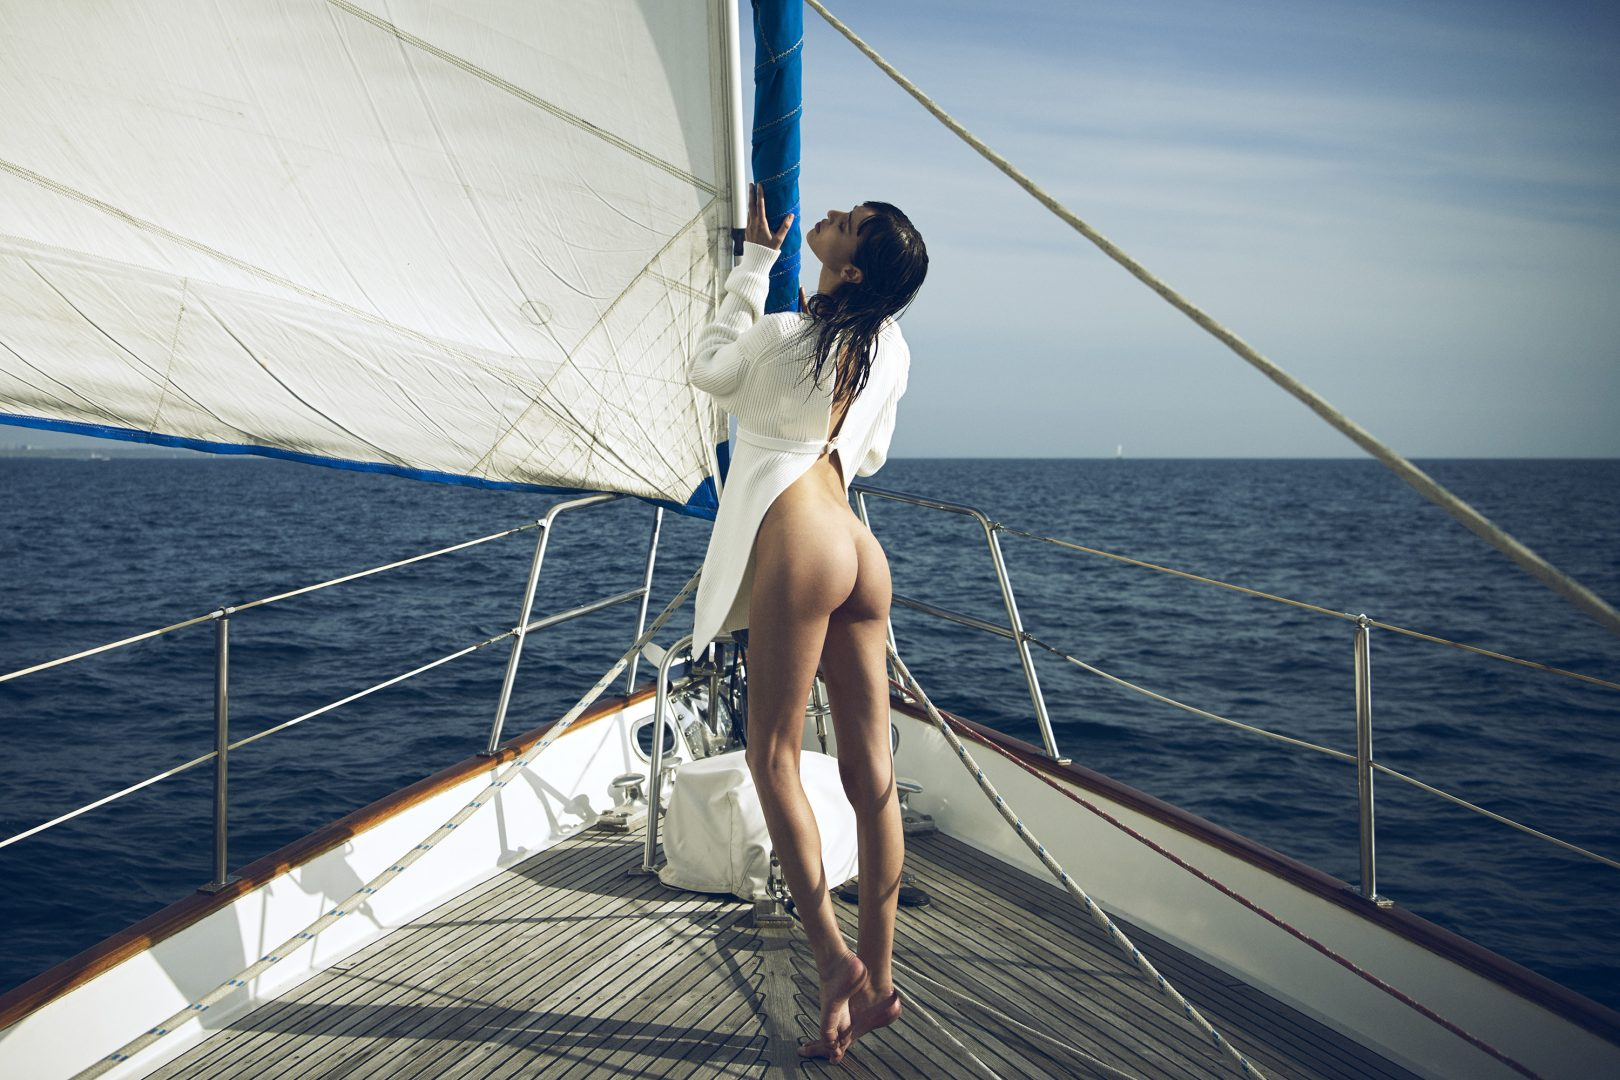 Girl on sailing boat form the back by Stefan Rappo